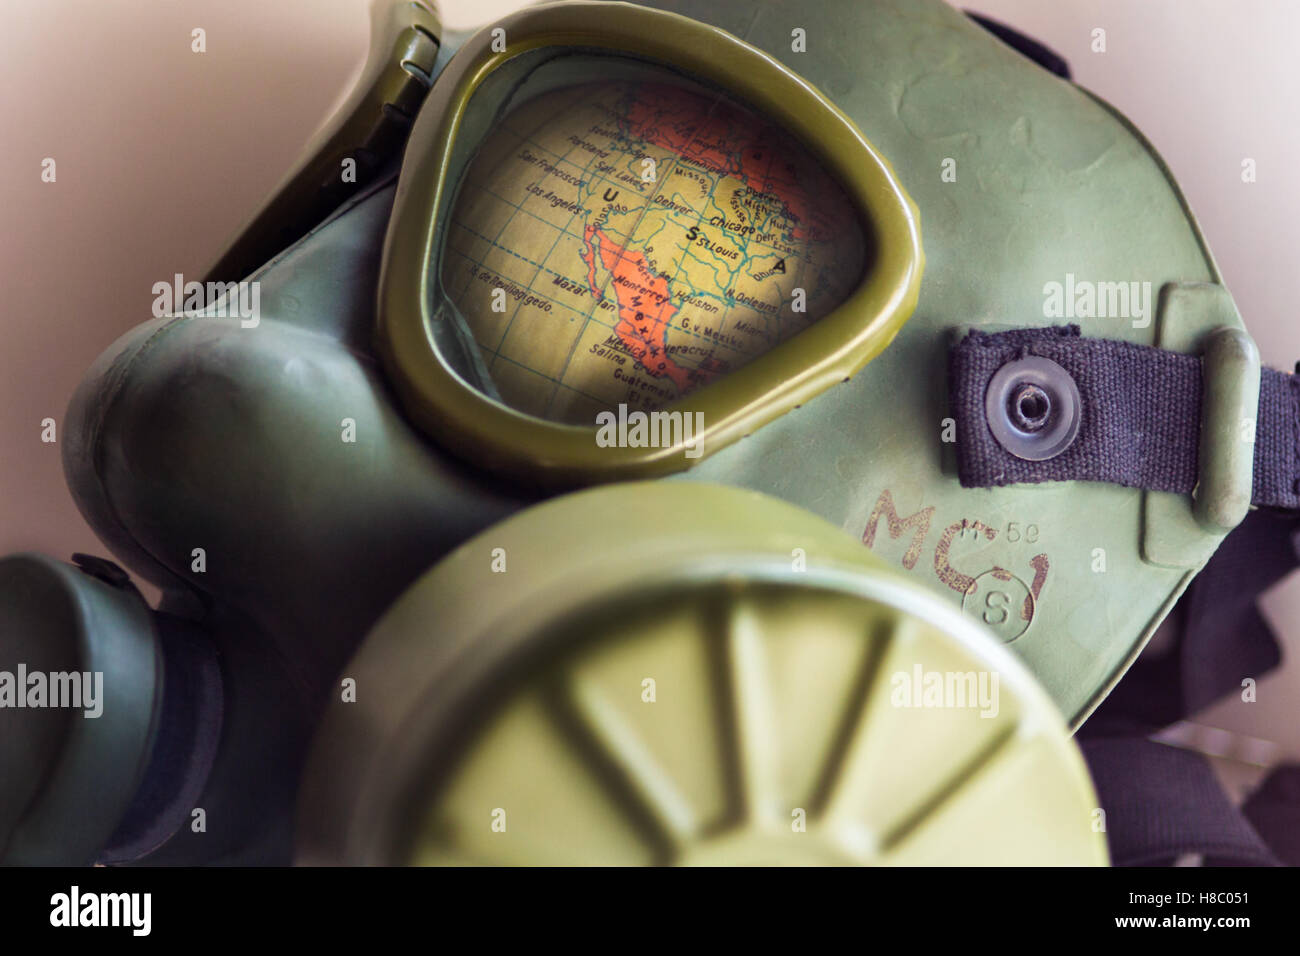 BELGRADE, SERBIA - NOVEMBER 10, 2016: Part of World map with USA shows through a WWII army gas mask (manufacturer - Stock Image